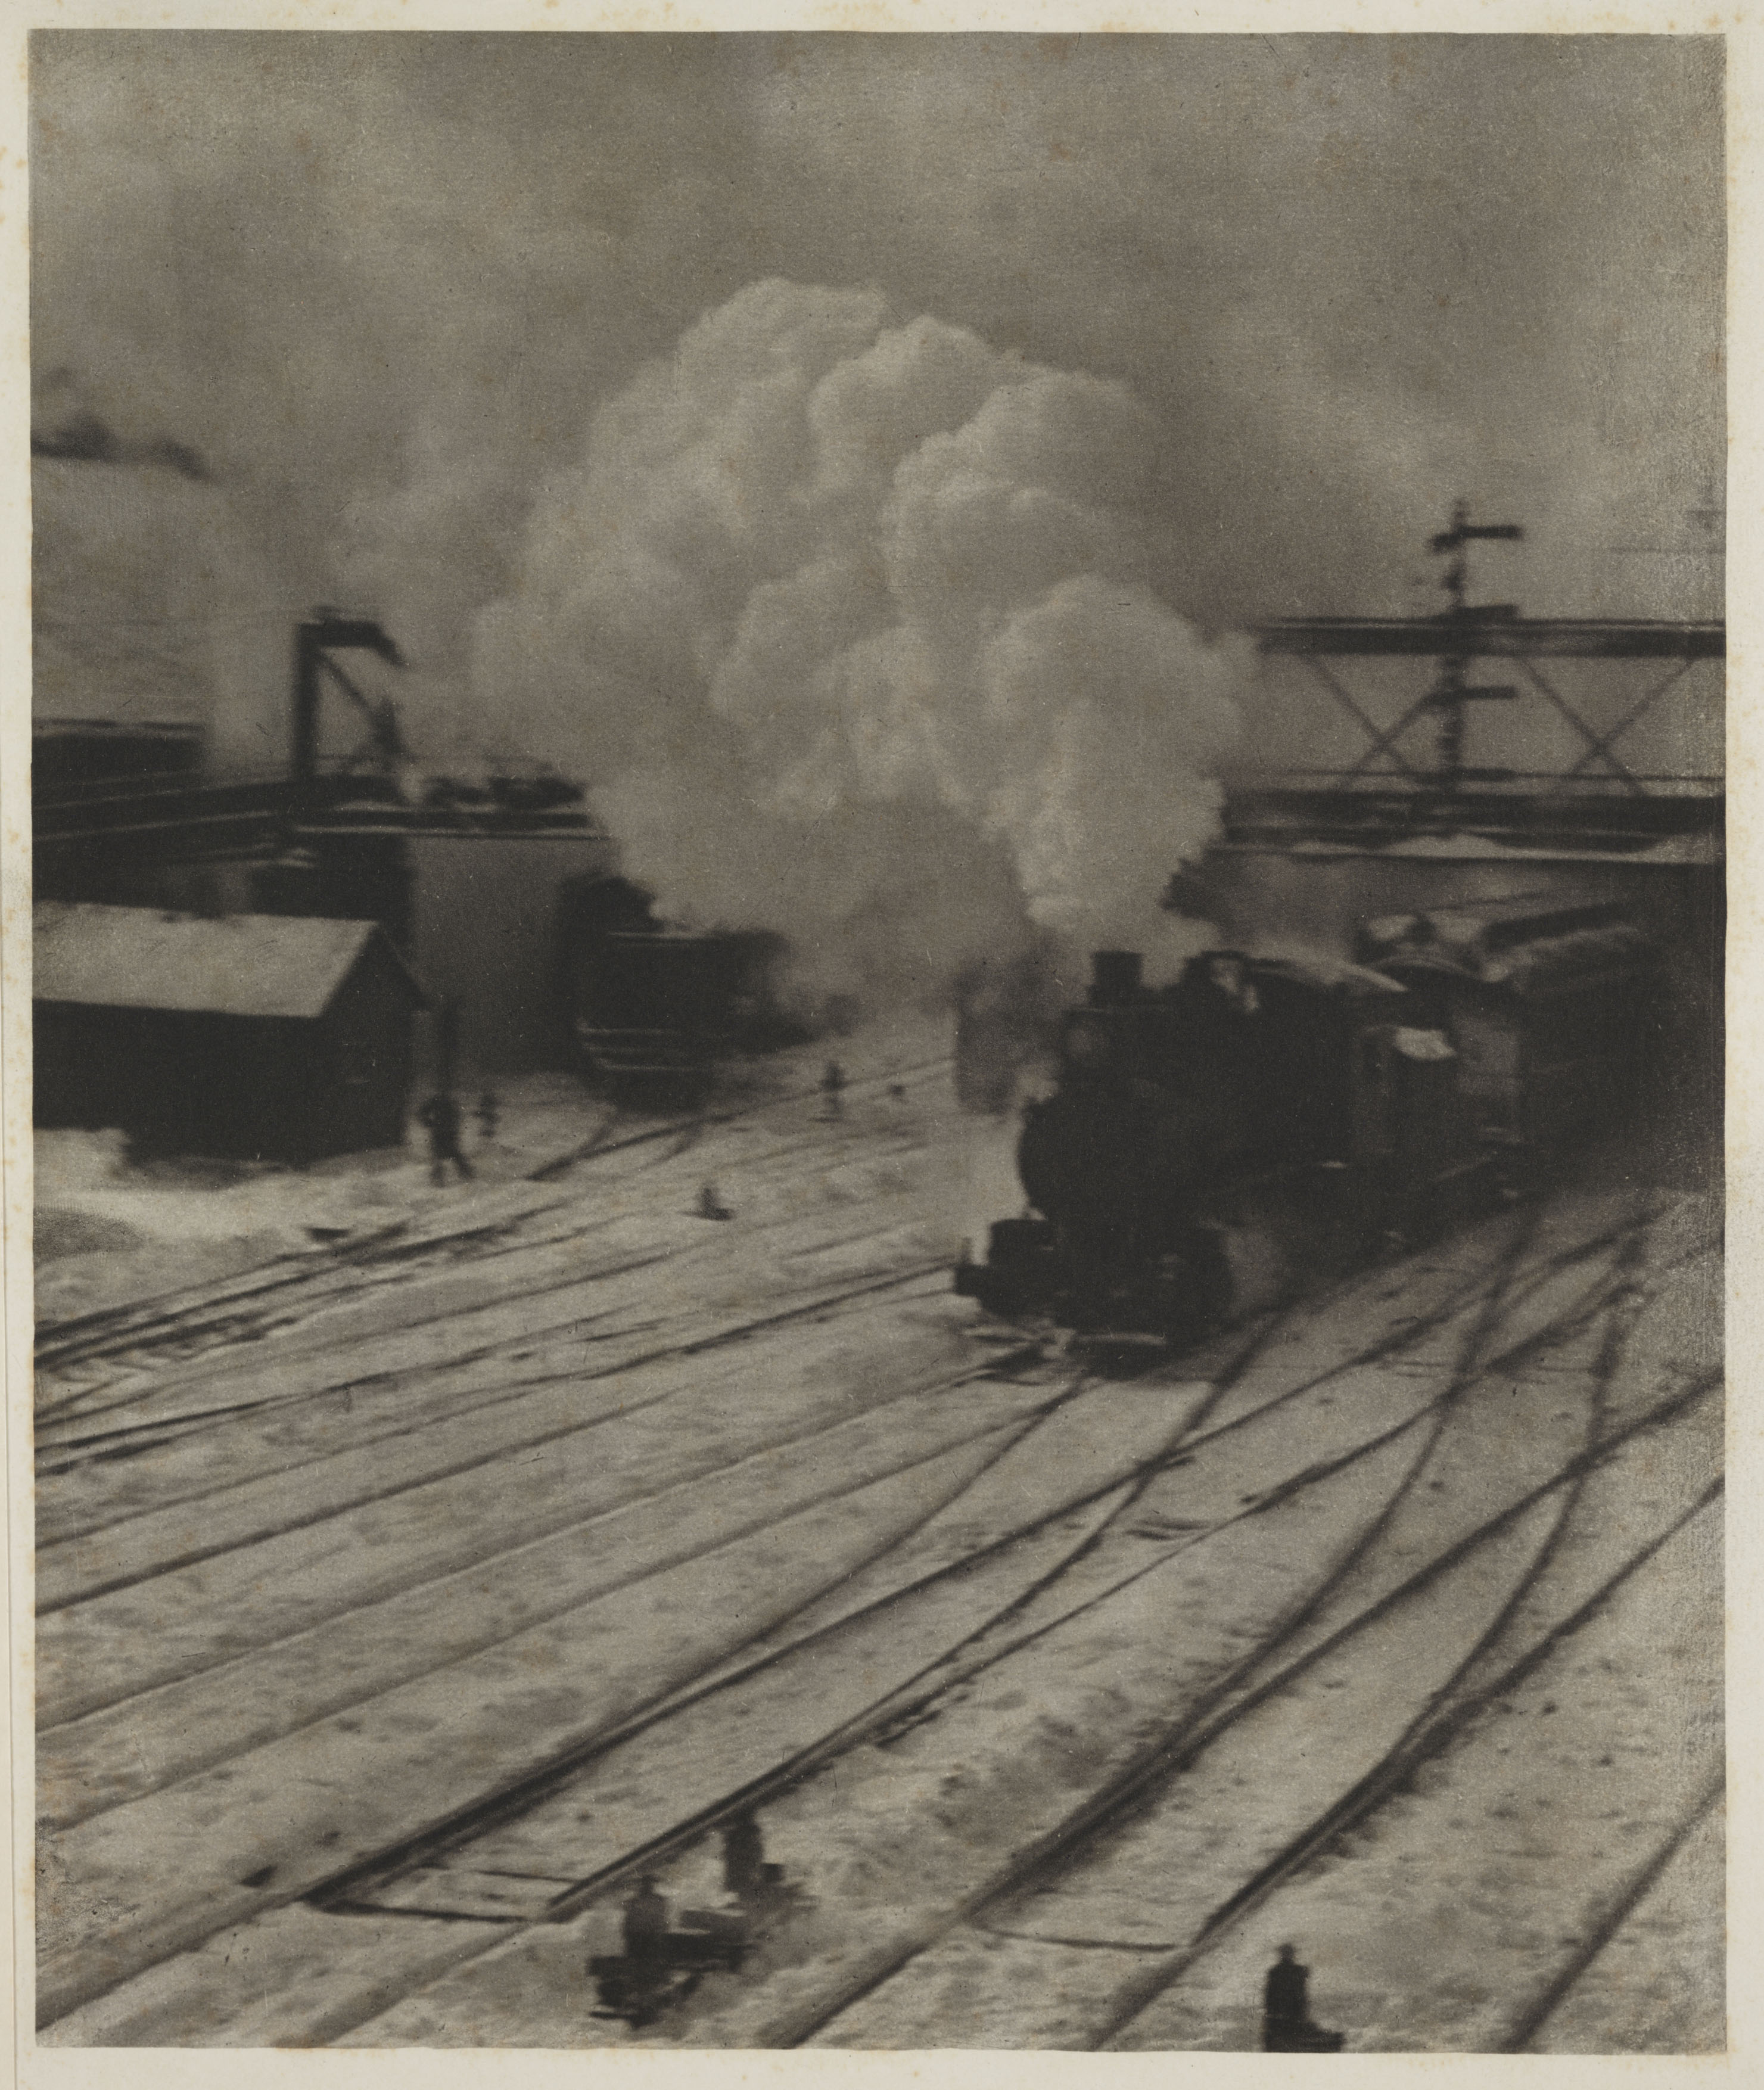 'The New York Central Yards', 1904.